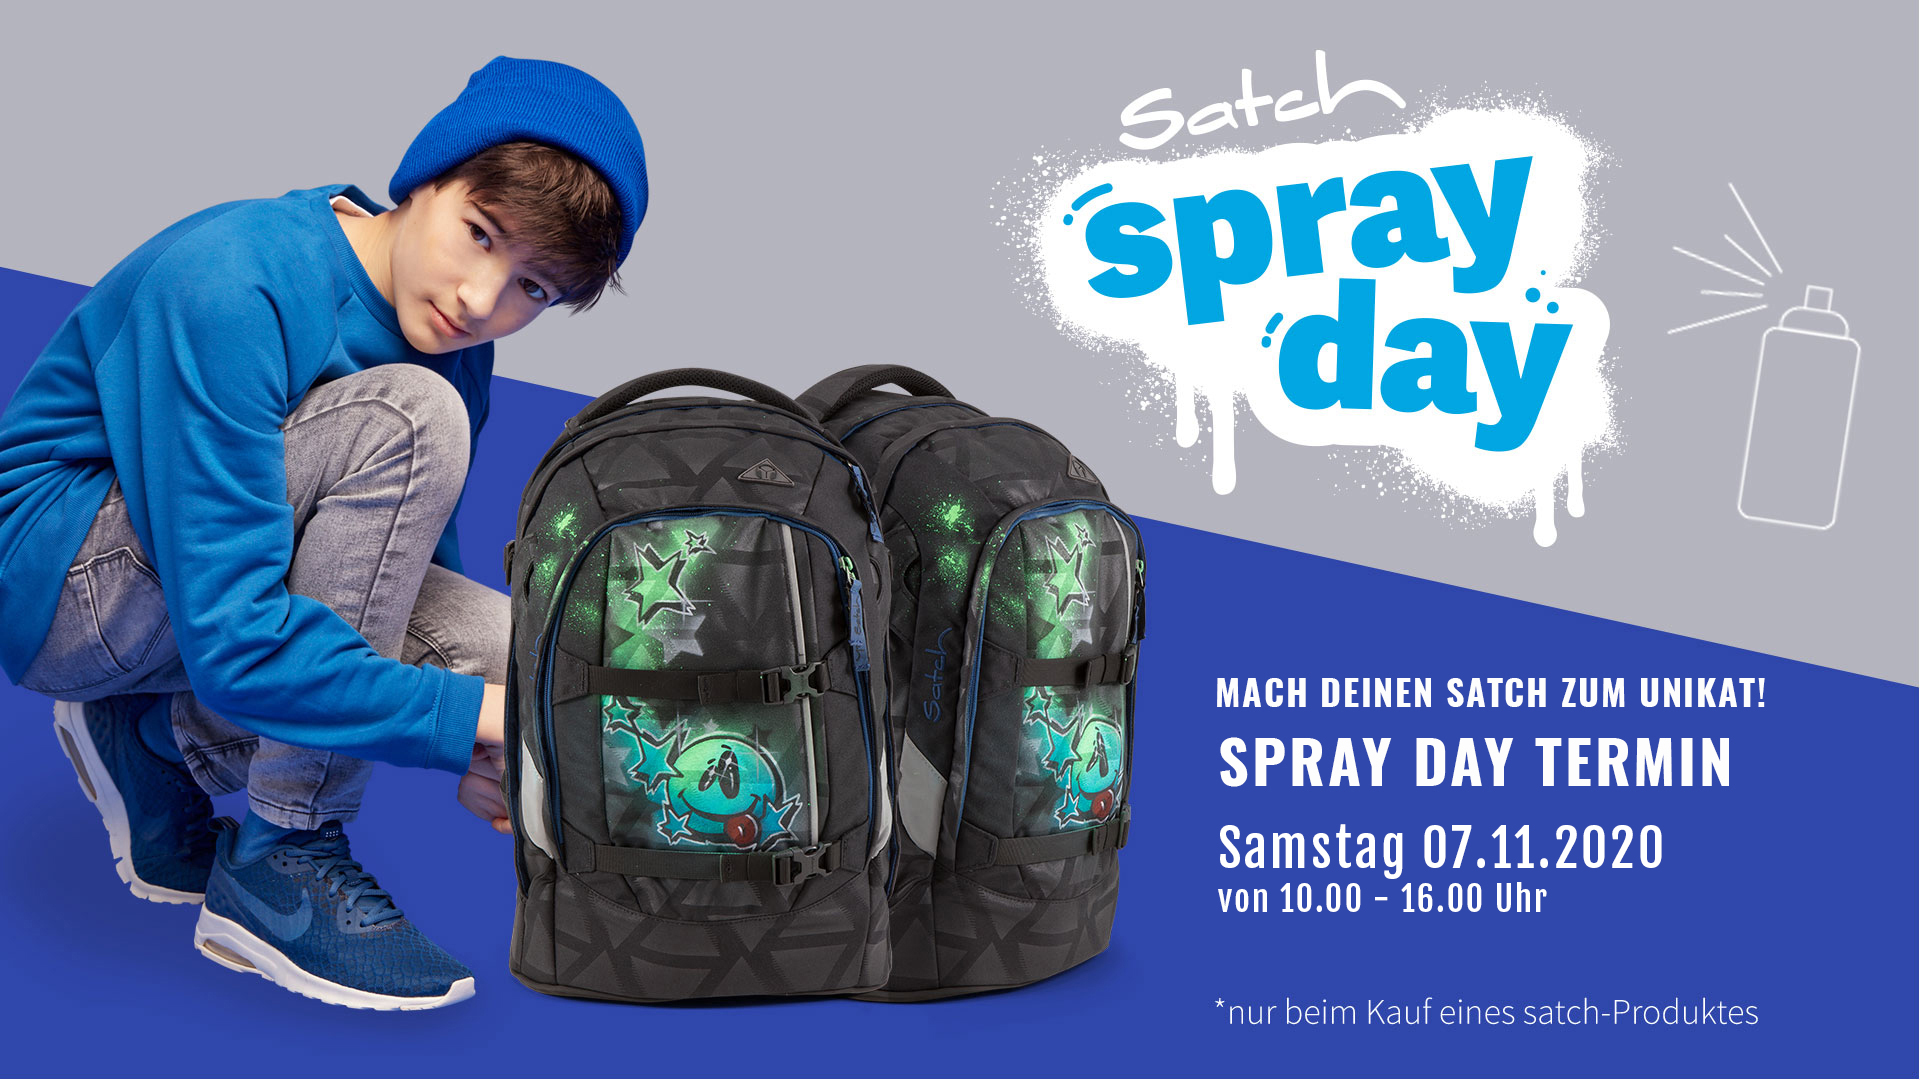 satch termin-2020-november spray-day